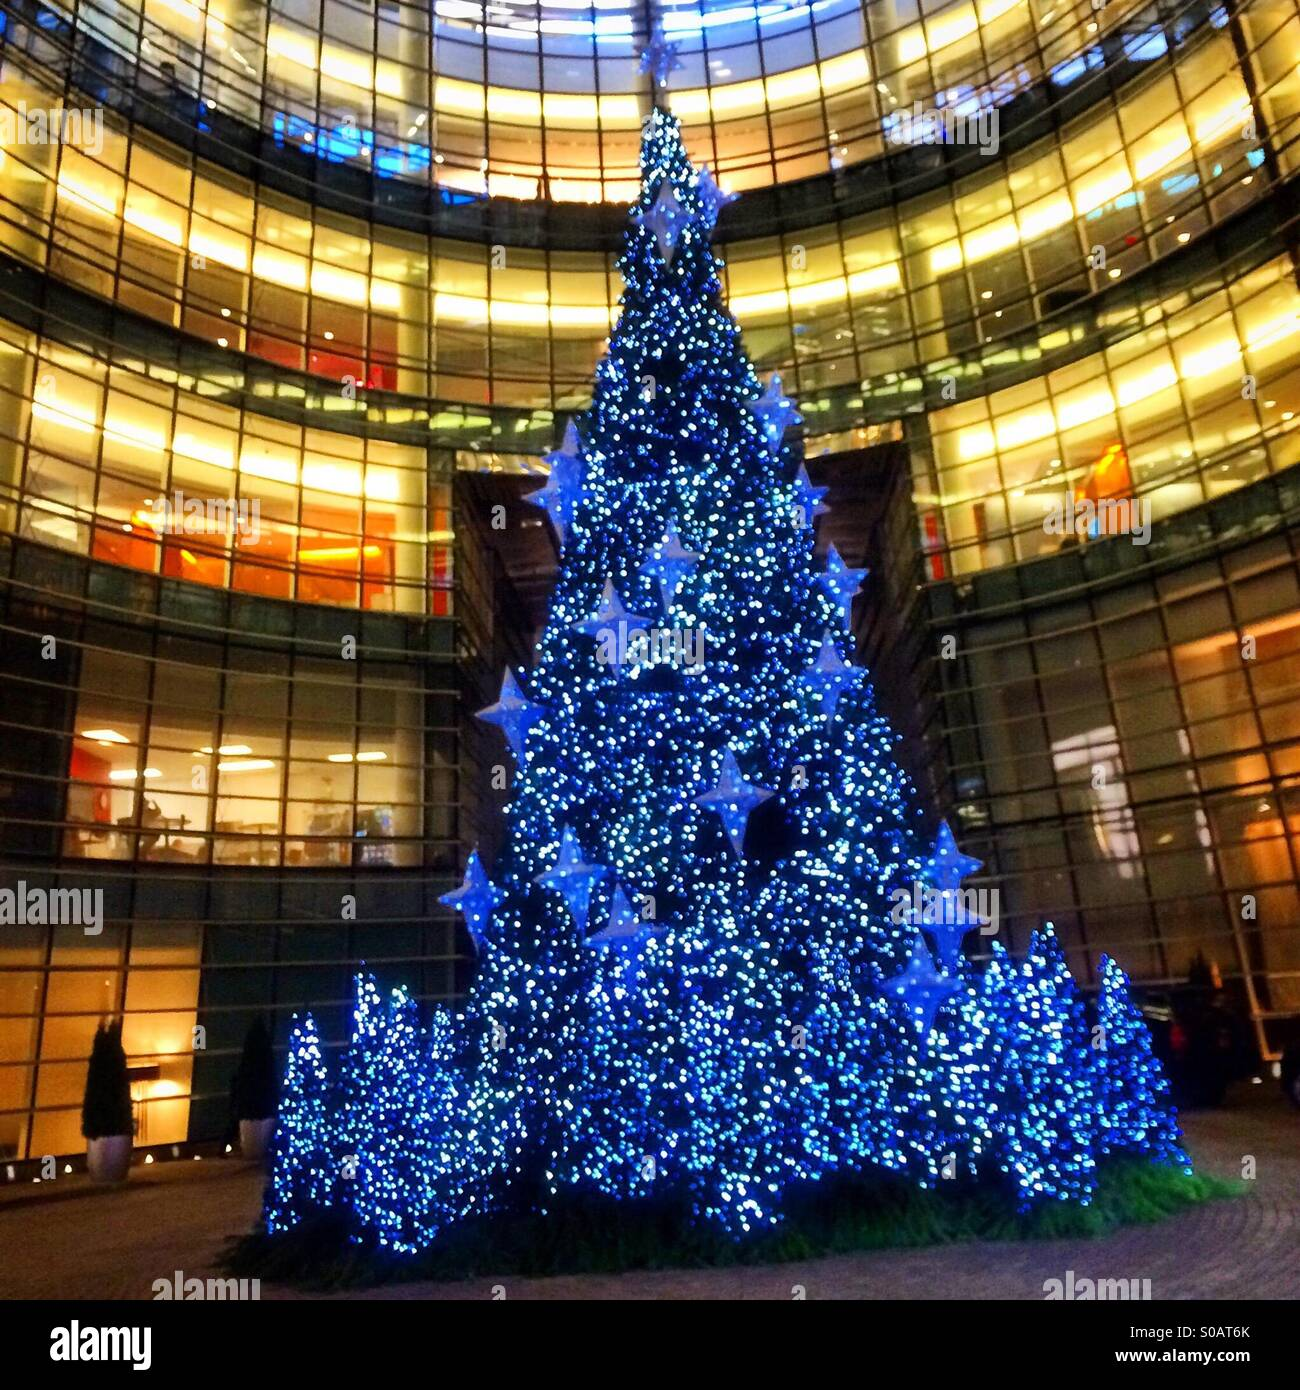 Christmas tree at Bloomburg Building in New York City Stock Photo